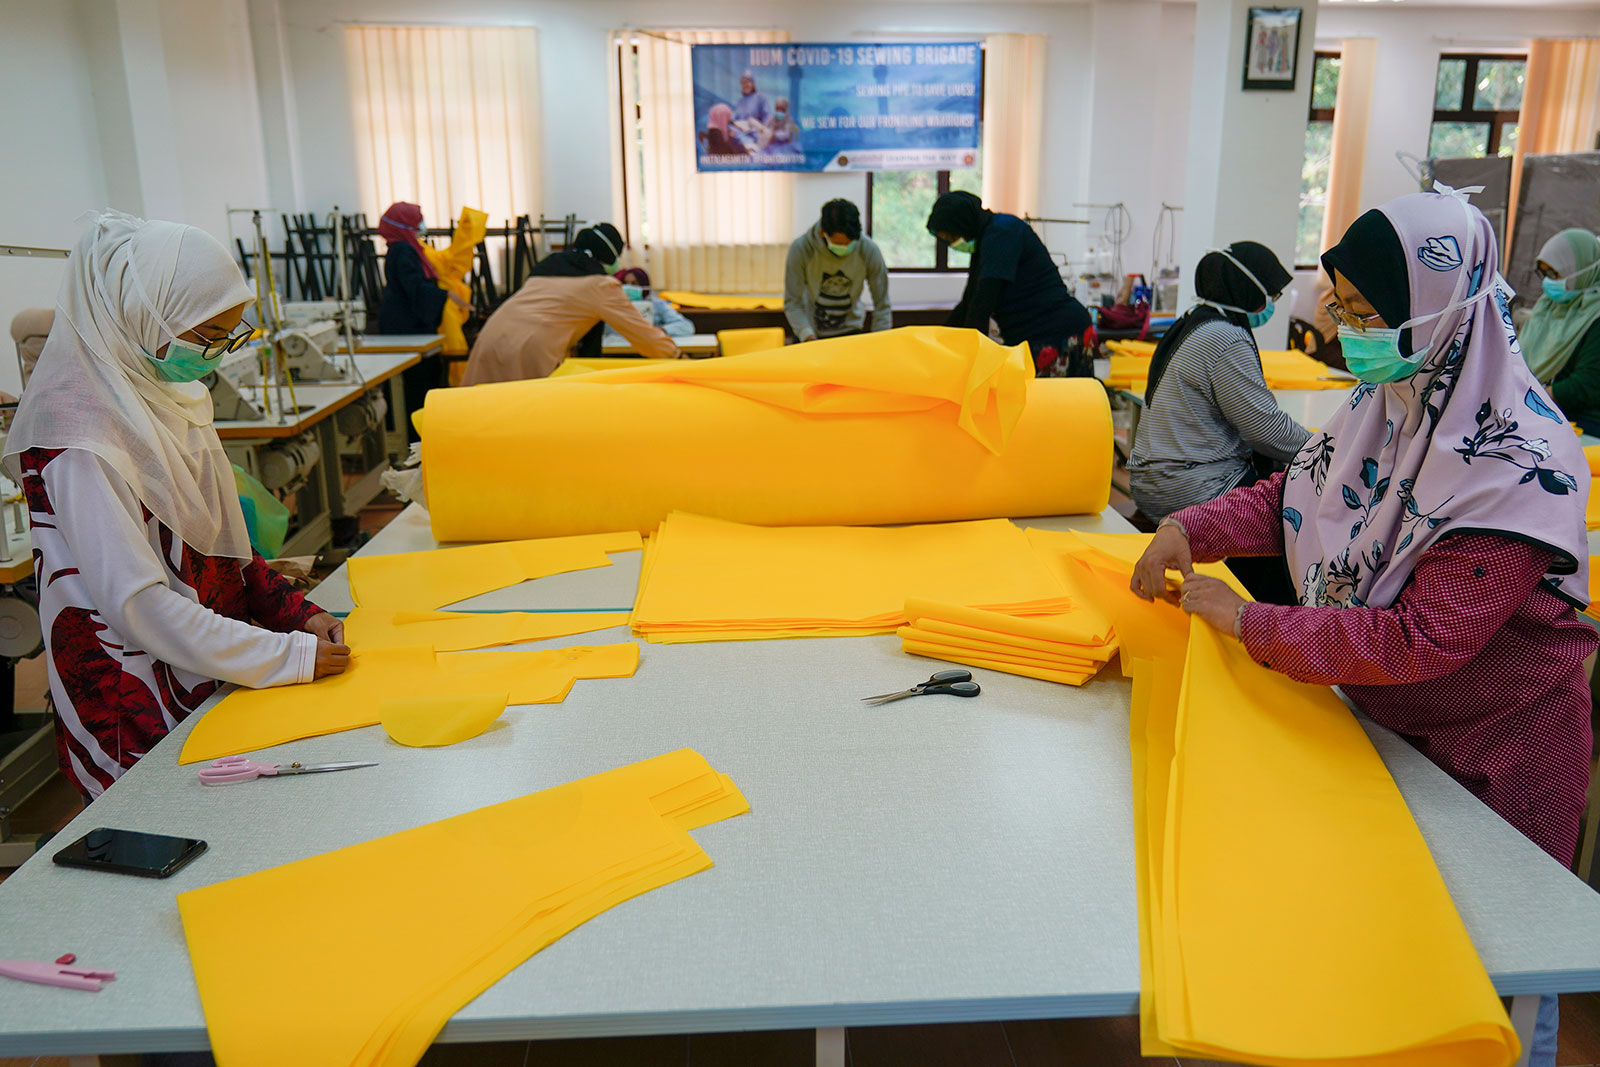 Volunteers construct Personal Protective Equipment to help stop the spread of the coronavirus being made at the International Islamic University Malaysia in Gombak, outside Kuala Lumpur, Malaysia, on April 10.